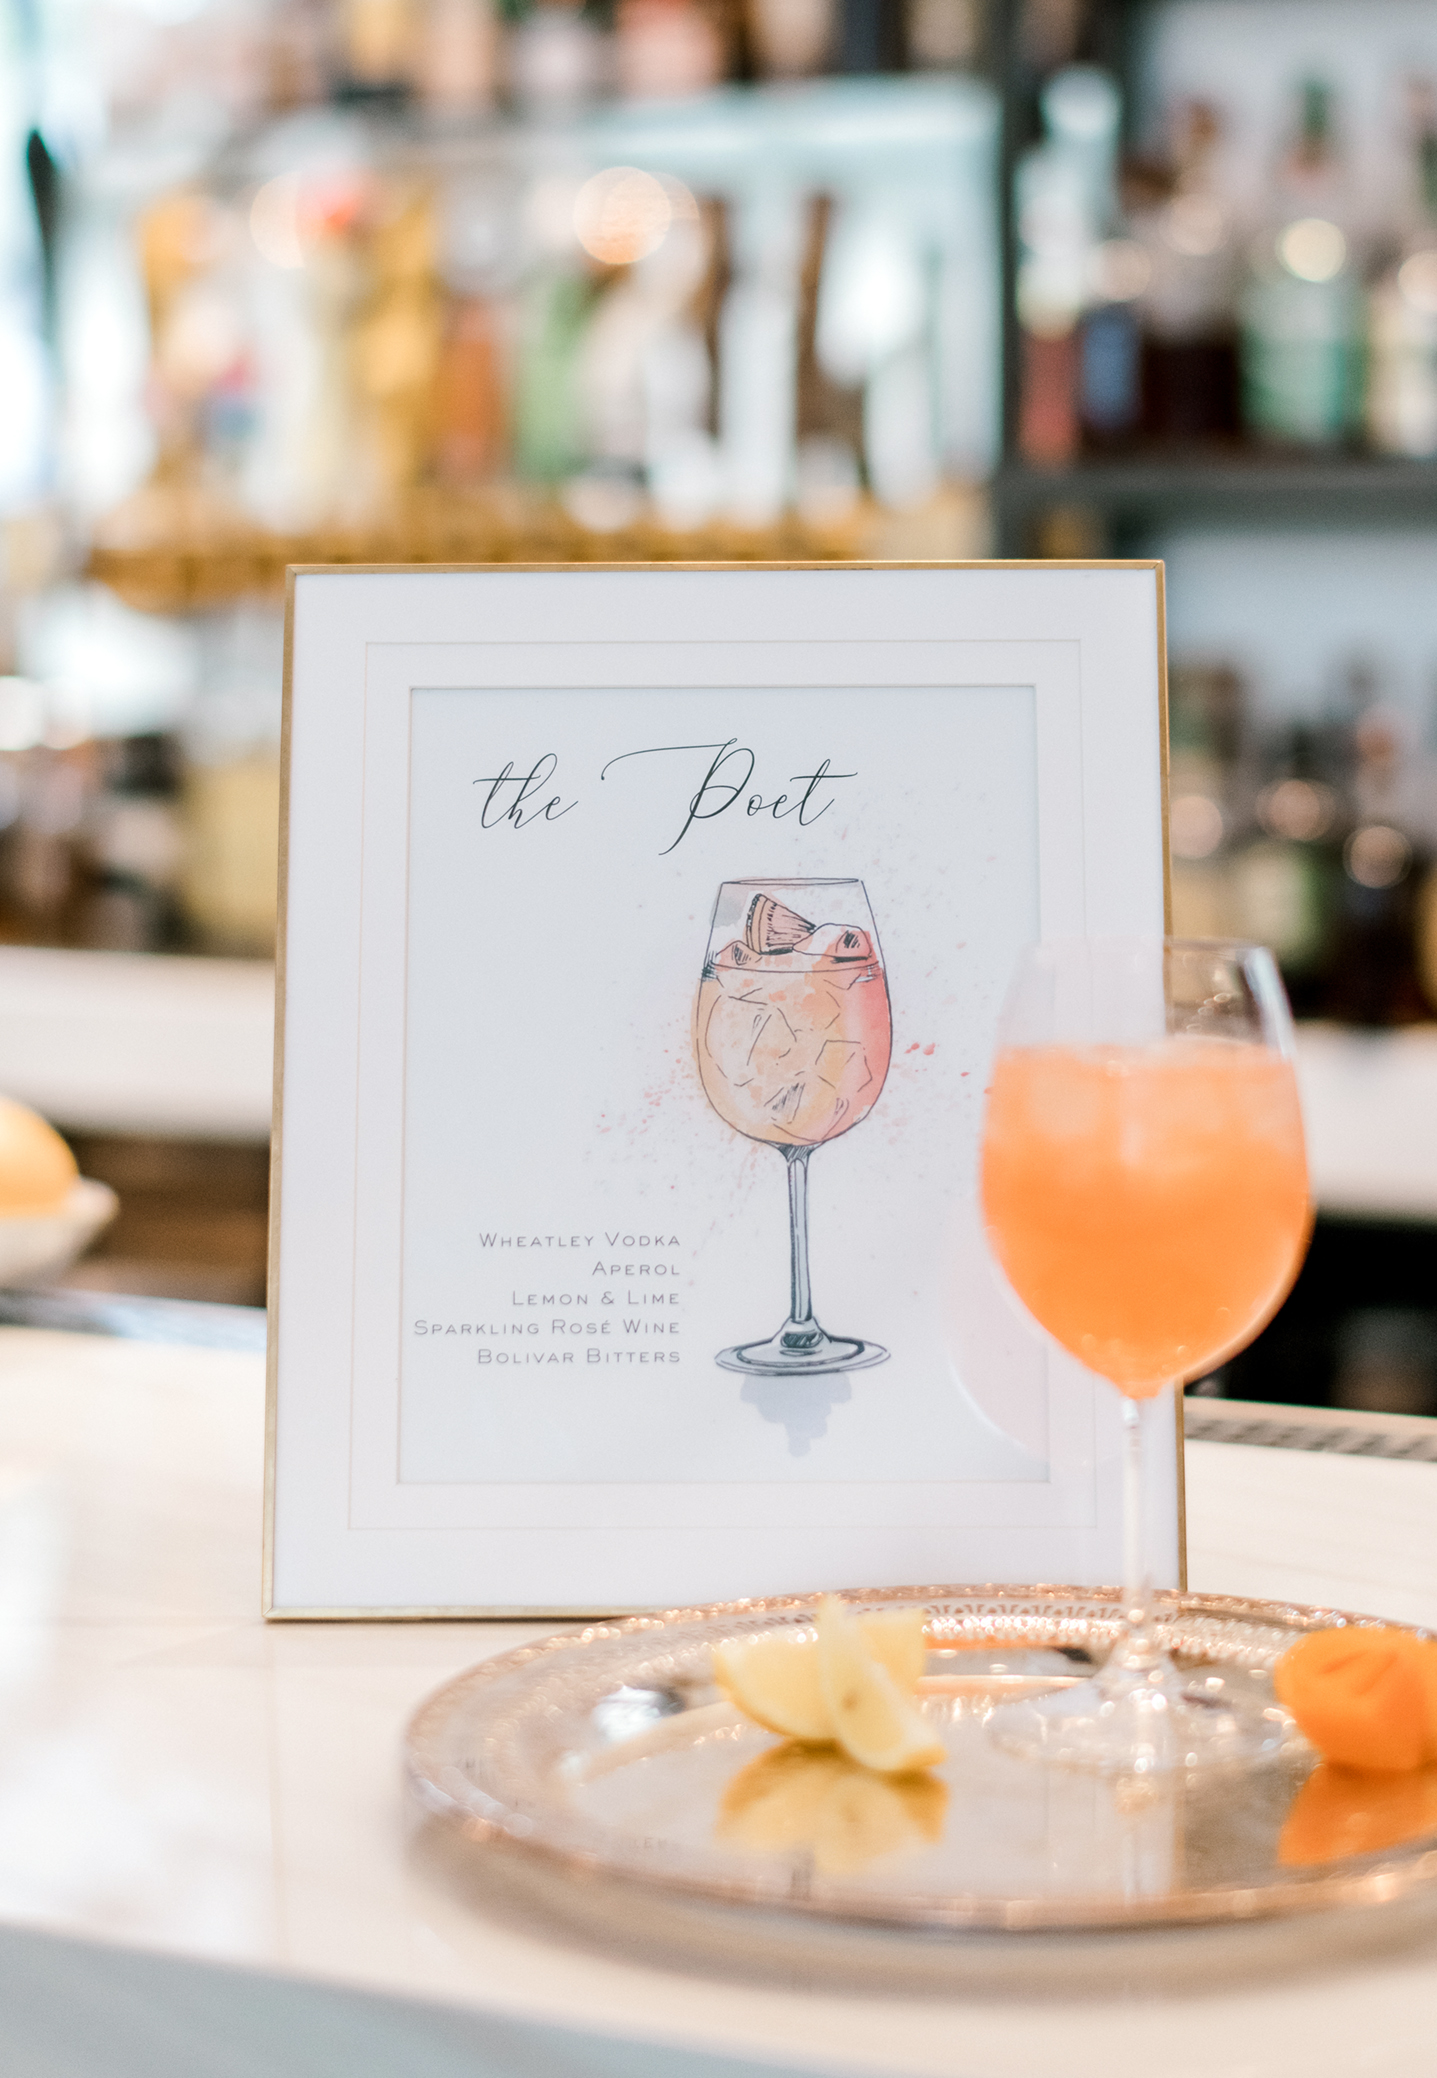 Pretty peach theme in a signature cocktail for a palette of pastel peach, white, green, and bright orange in a spring wedding.